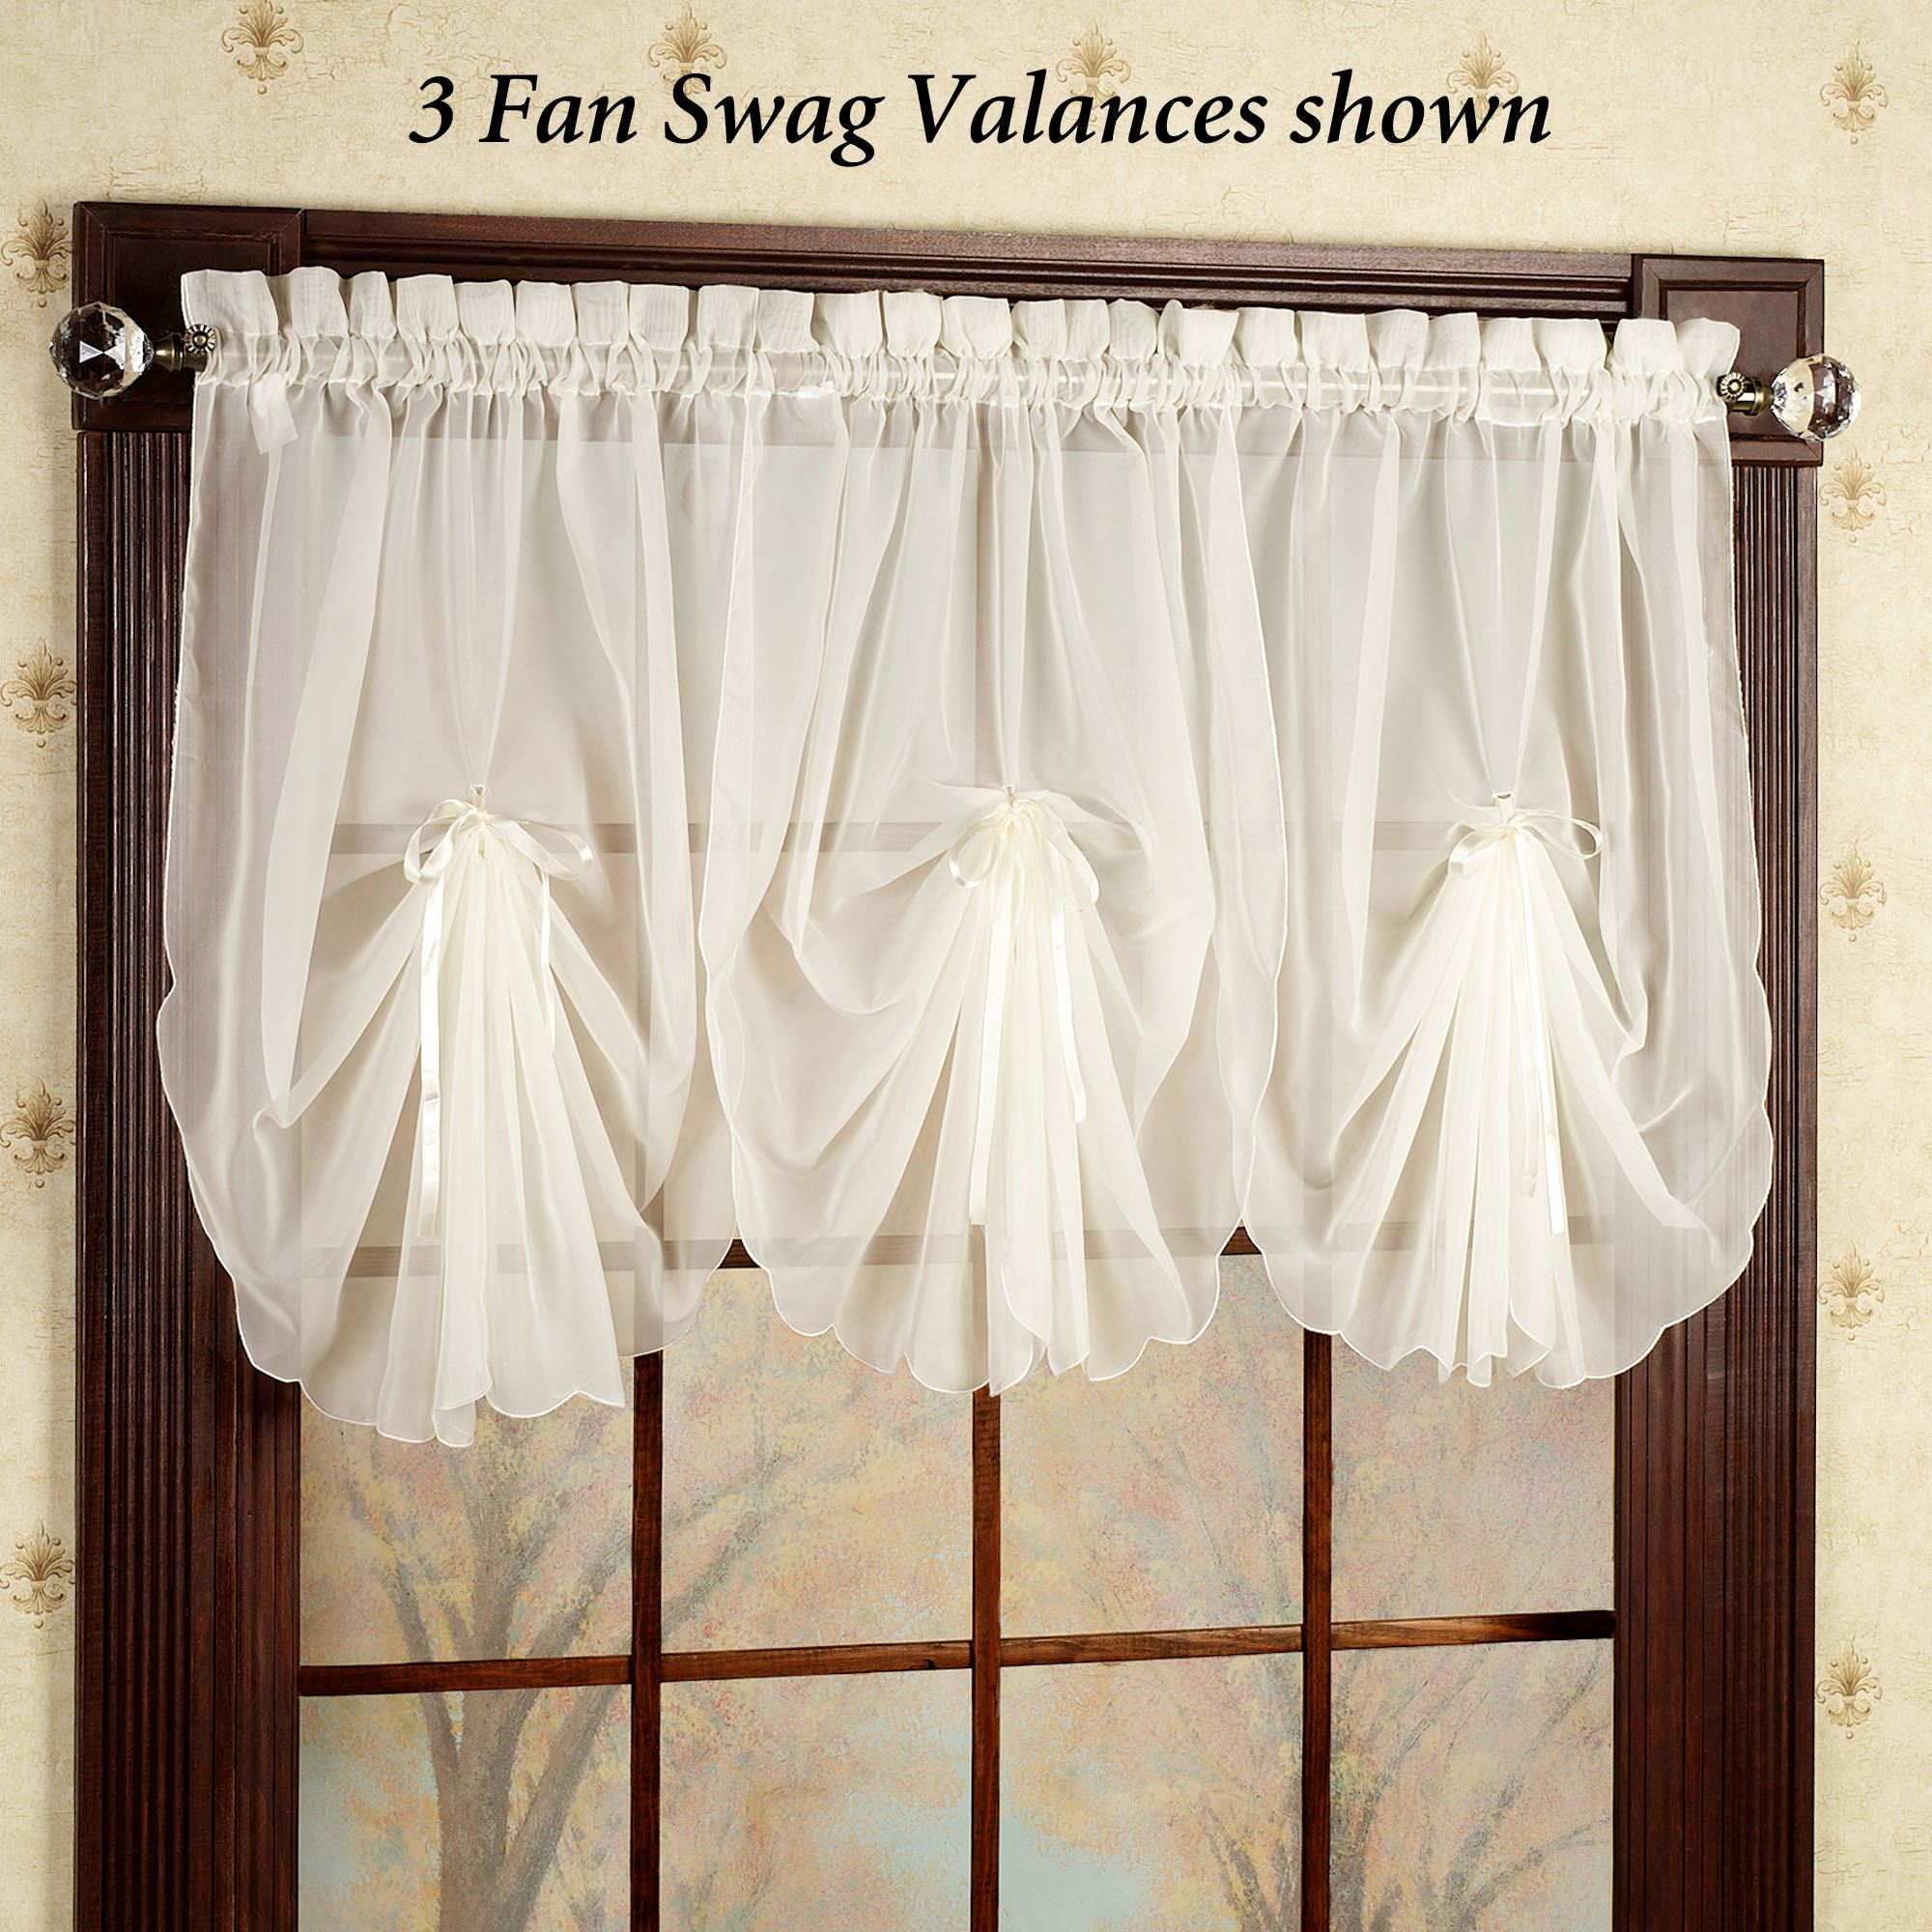 with bedroom ideas beautiful curtain your for dress valances long interior grey model windows accents cream enchanting using design family wall valance